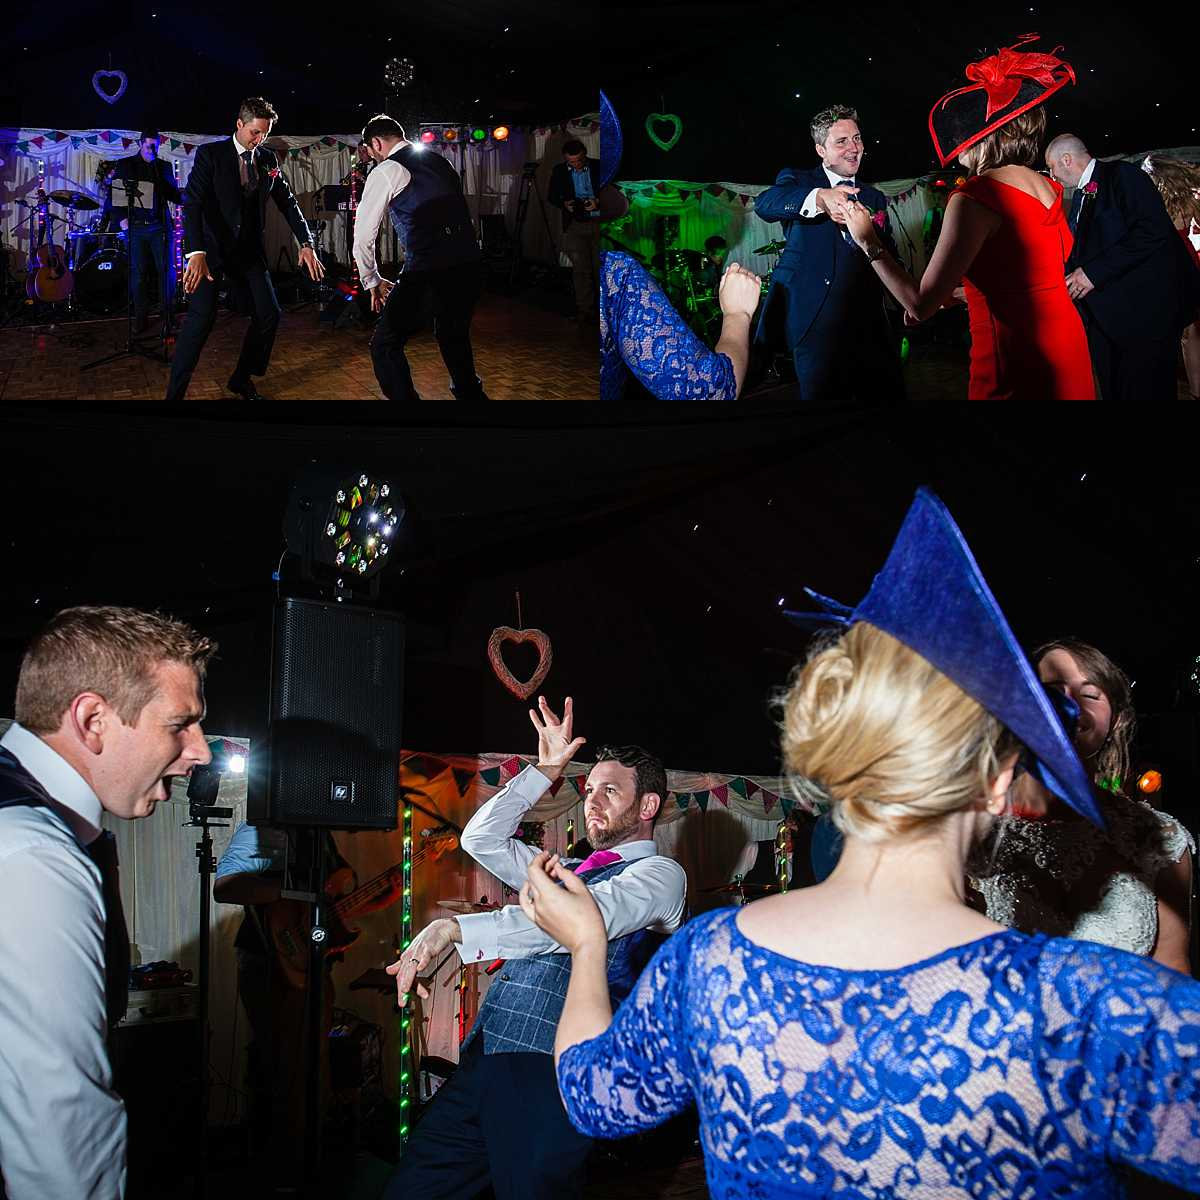 crazy dancing from the groom and his best man enjoying themselves